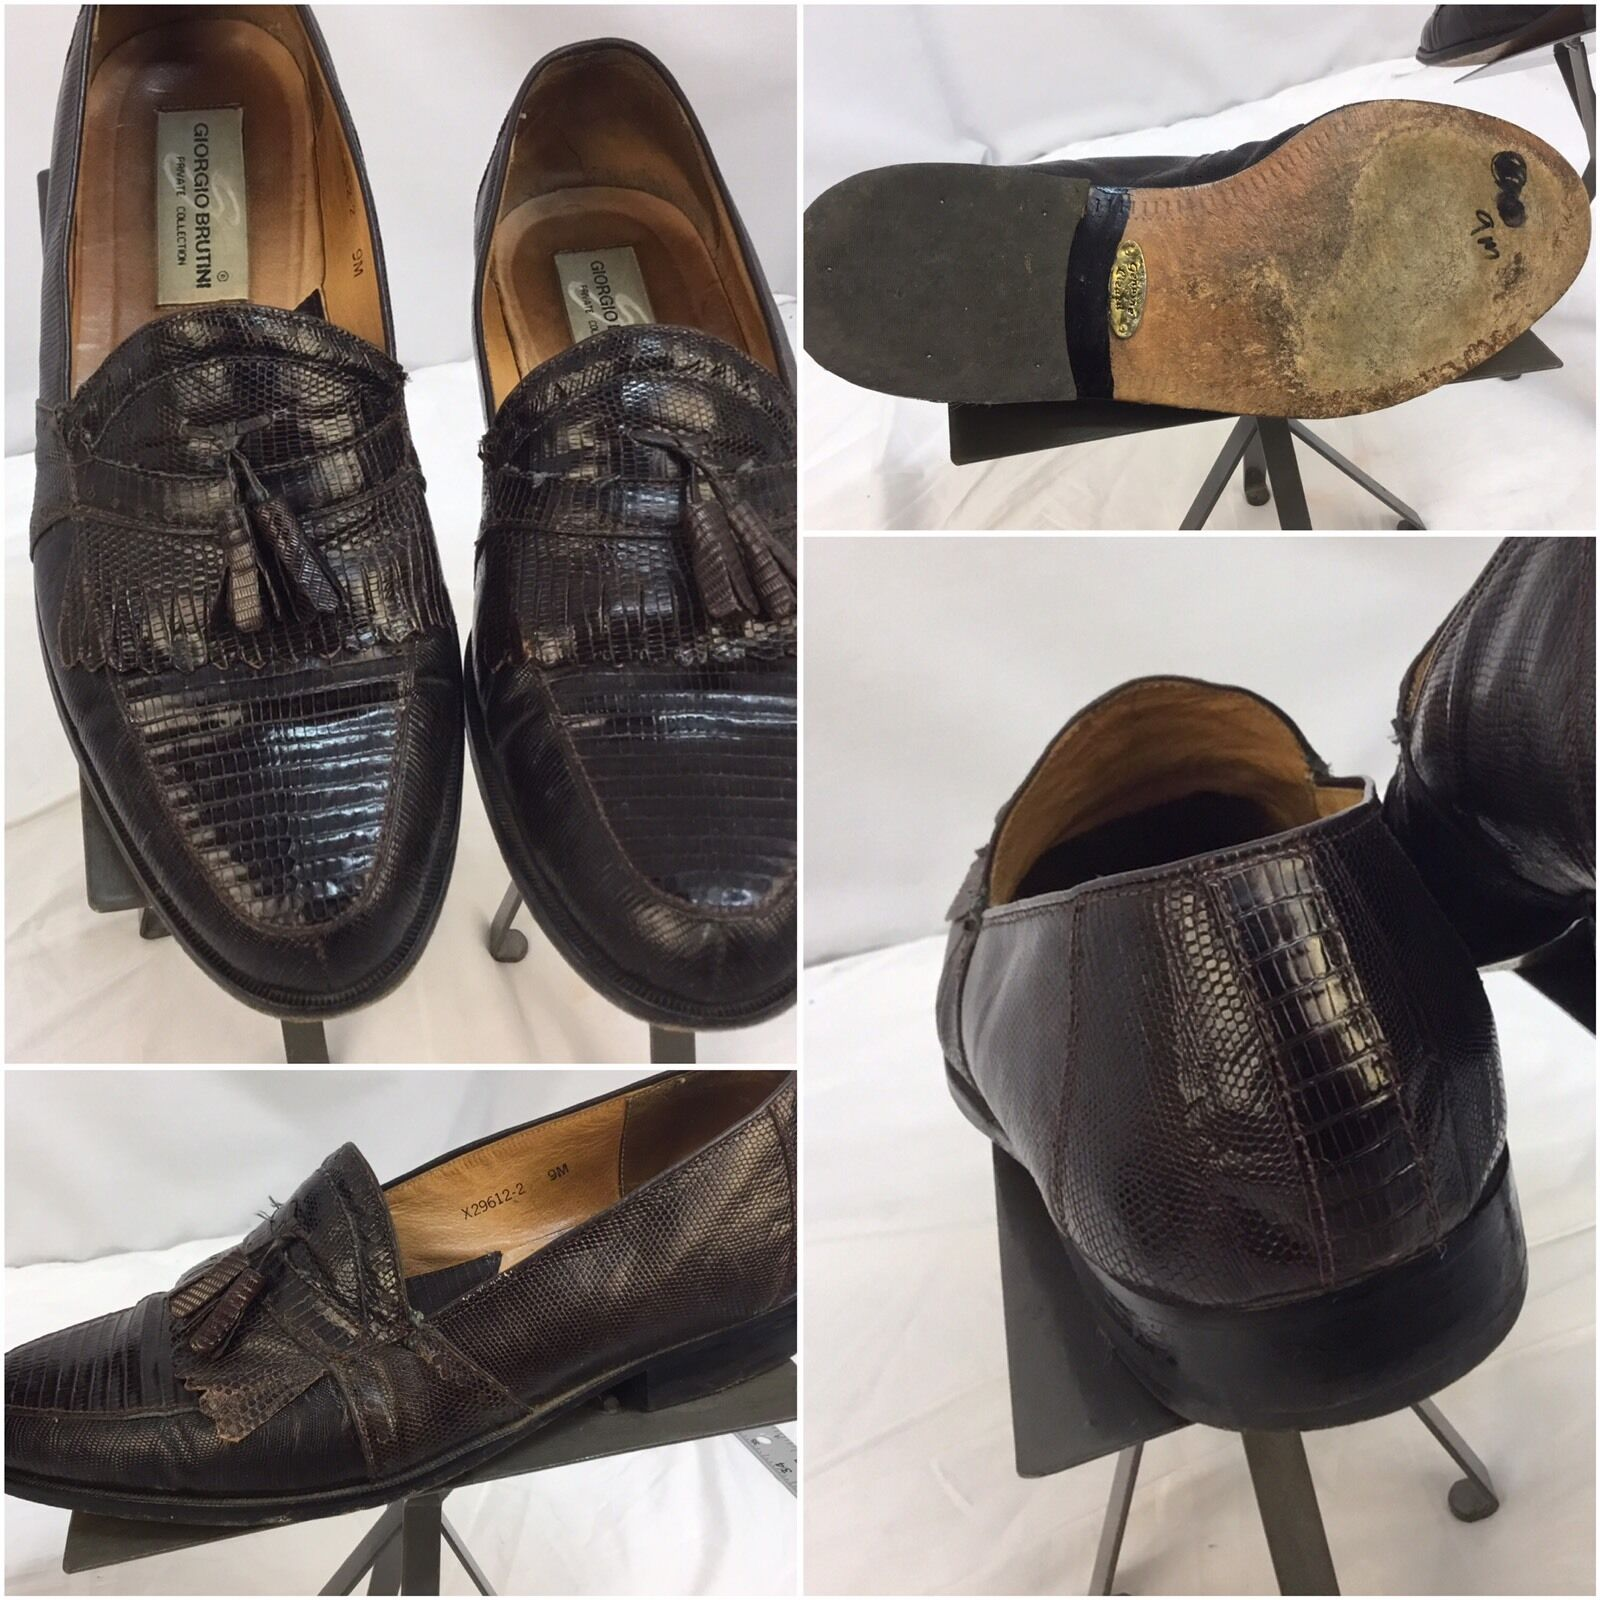 Giorgio Brutini Dress shoes 9 M Brown Loafer Lizard Private Collection YGI E7